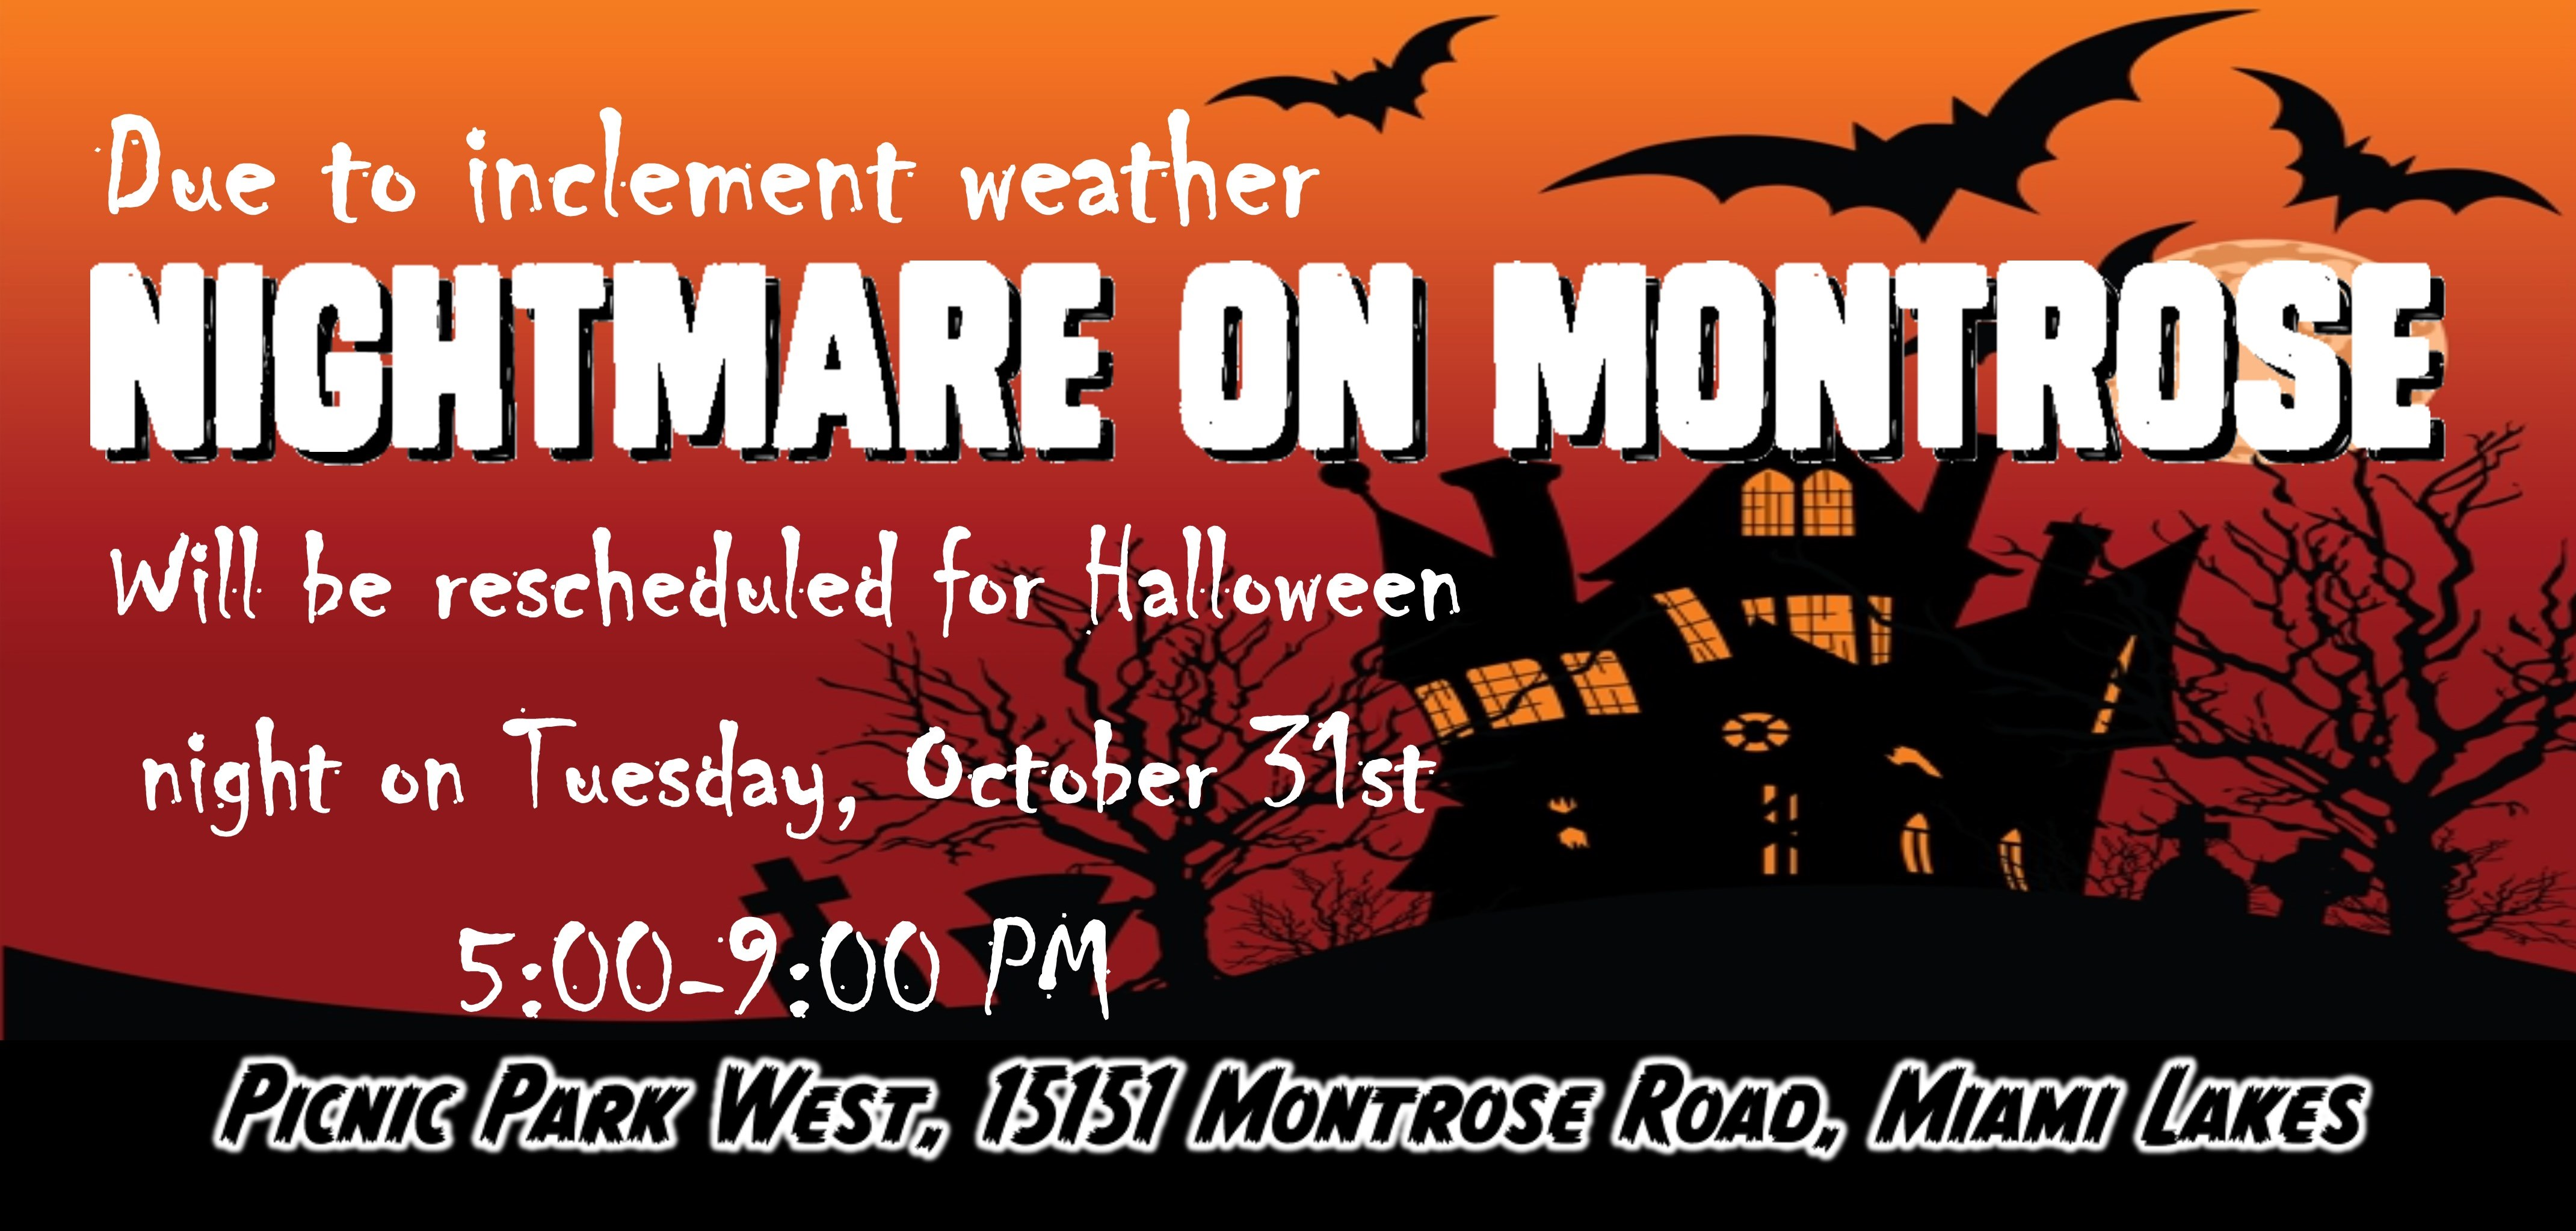 calling all ghosts and goblins to the annual halloween event nightmare on montrose kids of all ages are invited to celebrate halloween on saturday